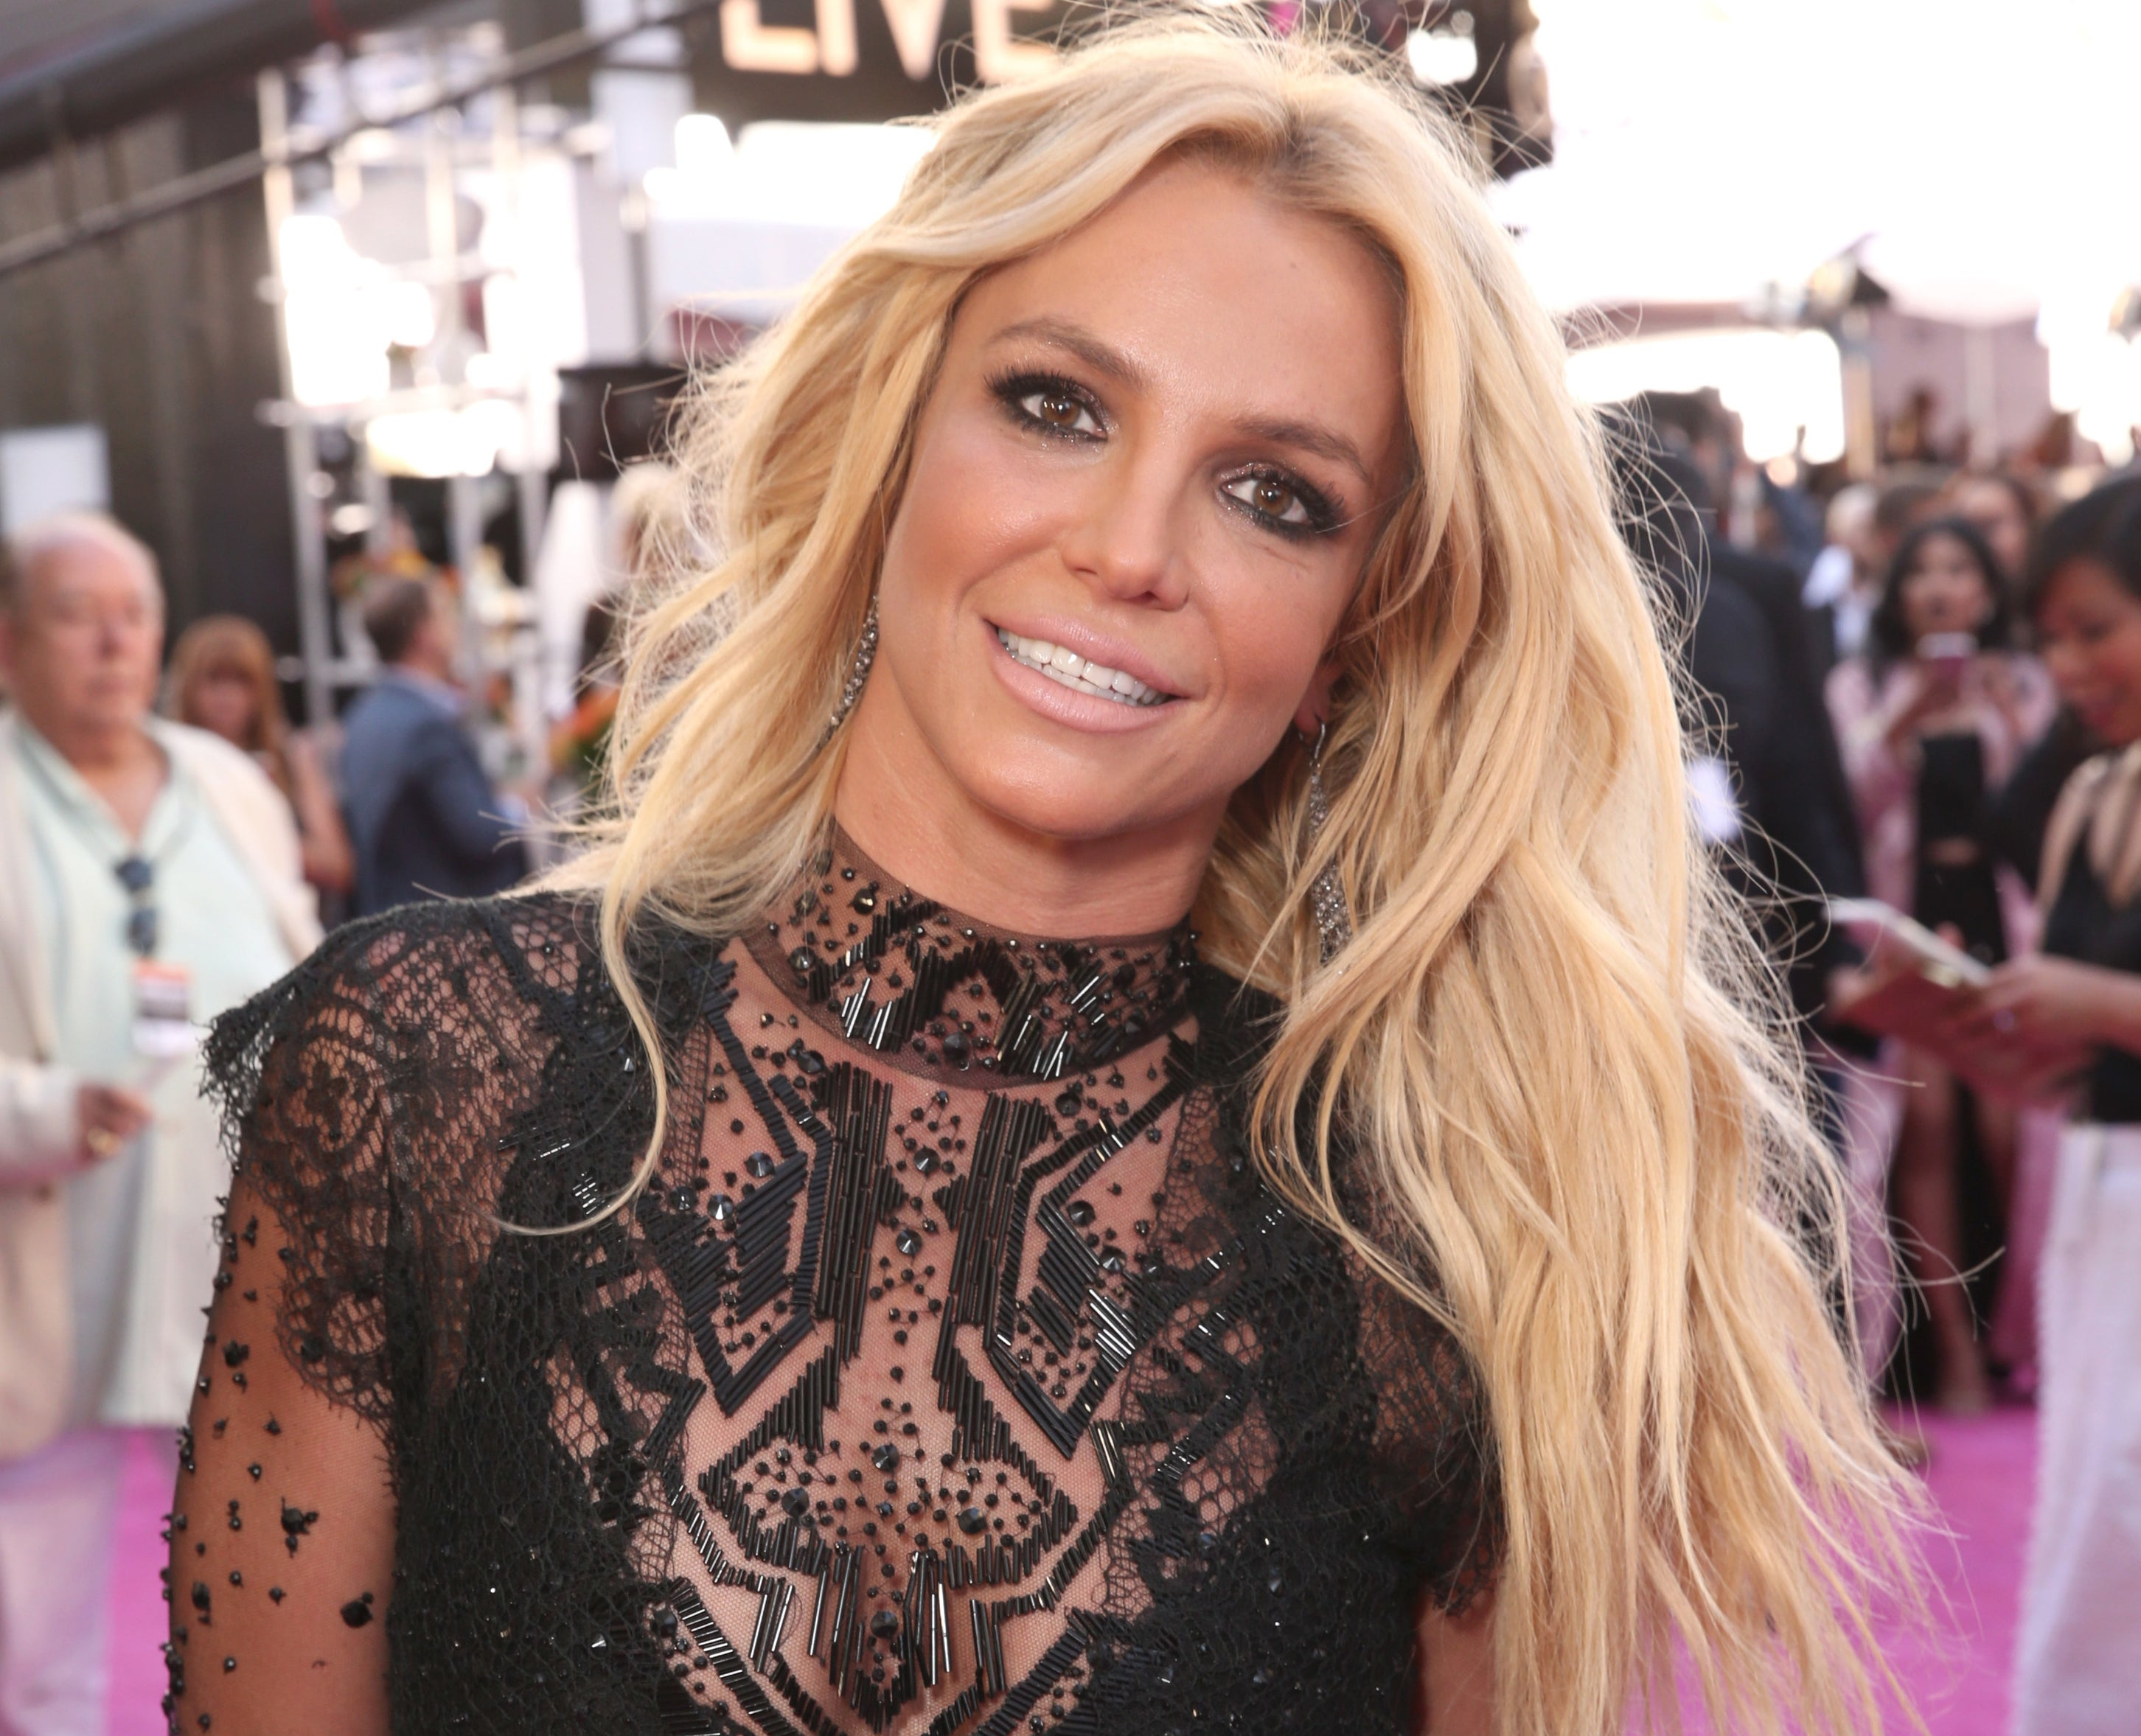 Britney smiles while tossing her hair